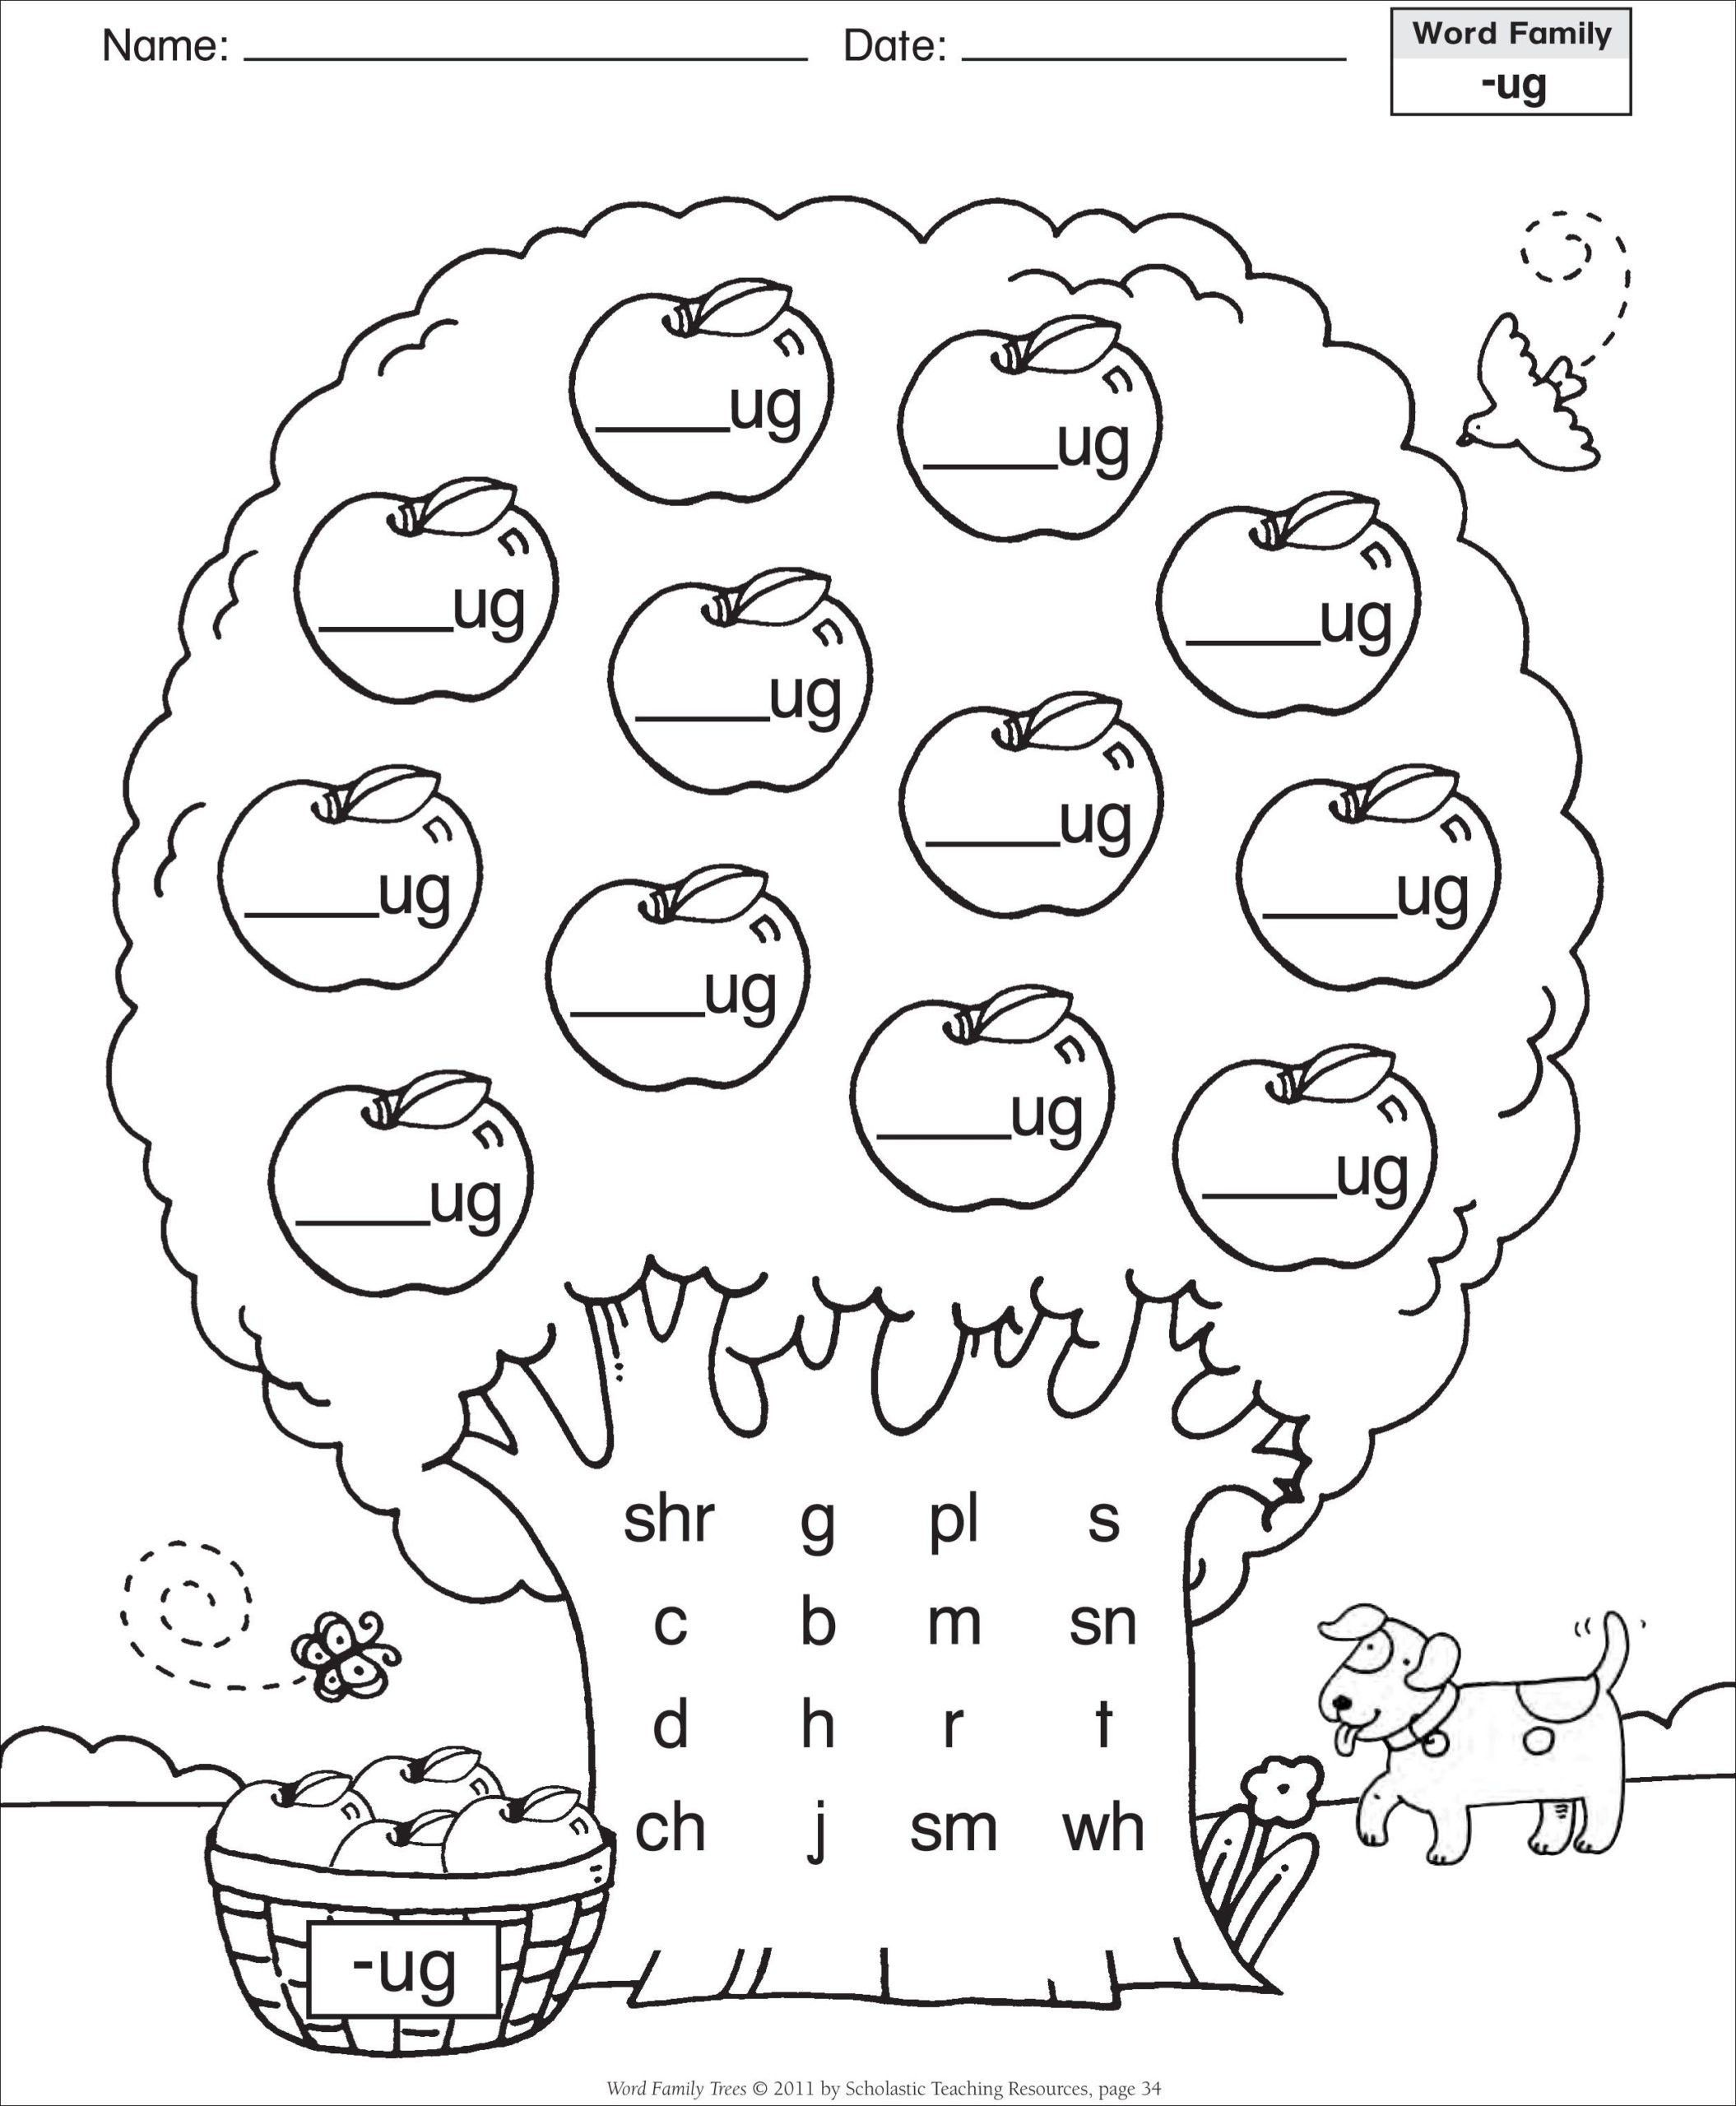 Free Menu Math Worksheets Kindergarten Phonics Worksheets Kindergarten Worksheets Printable Kindergarten Word Families Worksheets